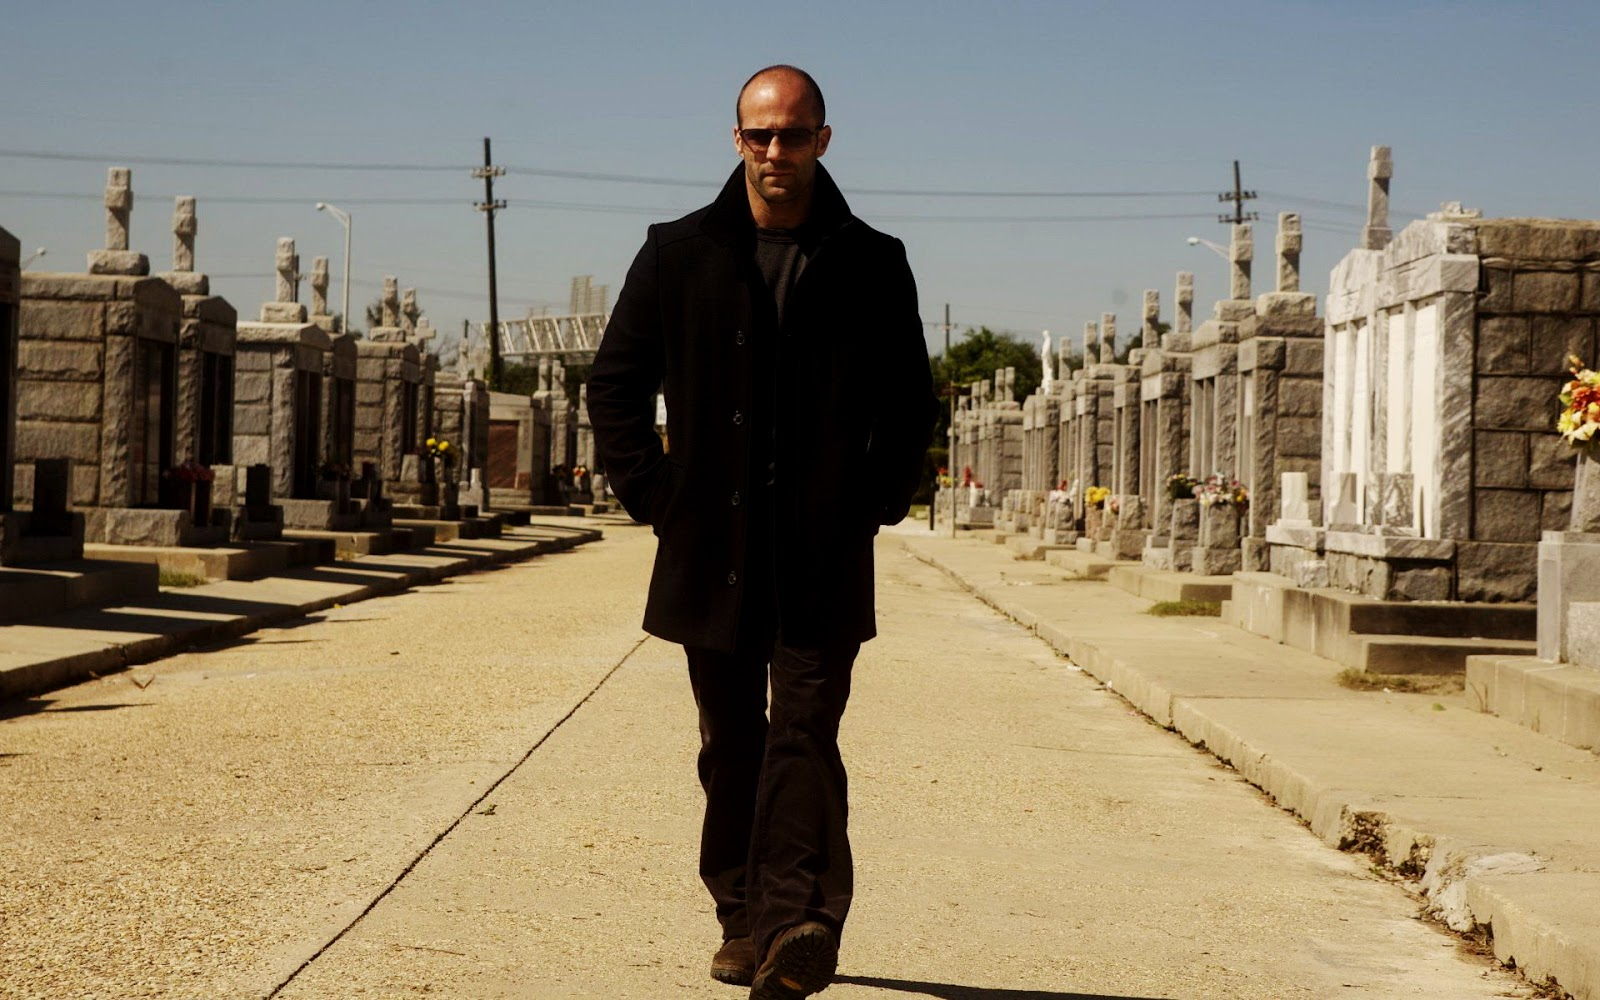 http://3.bp.blogspot.com/-3BAxII_aJf8/TsfV14d0NQI/AAAAAAAAEfI/aoP8-5JT1qo/s1600/Jason_Statham_Mechanic_Movie_HD_Wallpaper_Vvallpaper.Net.jpg